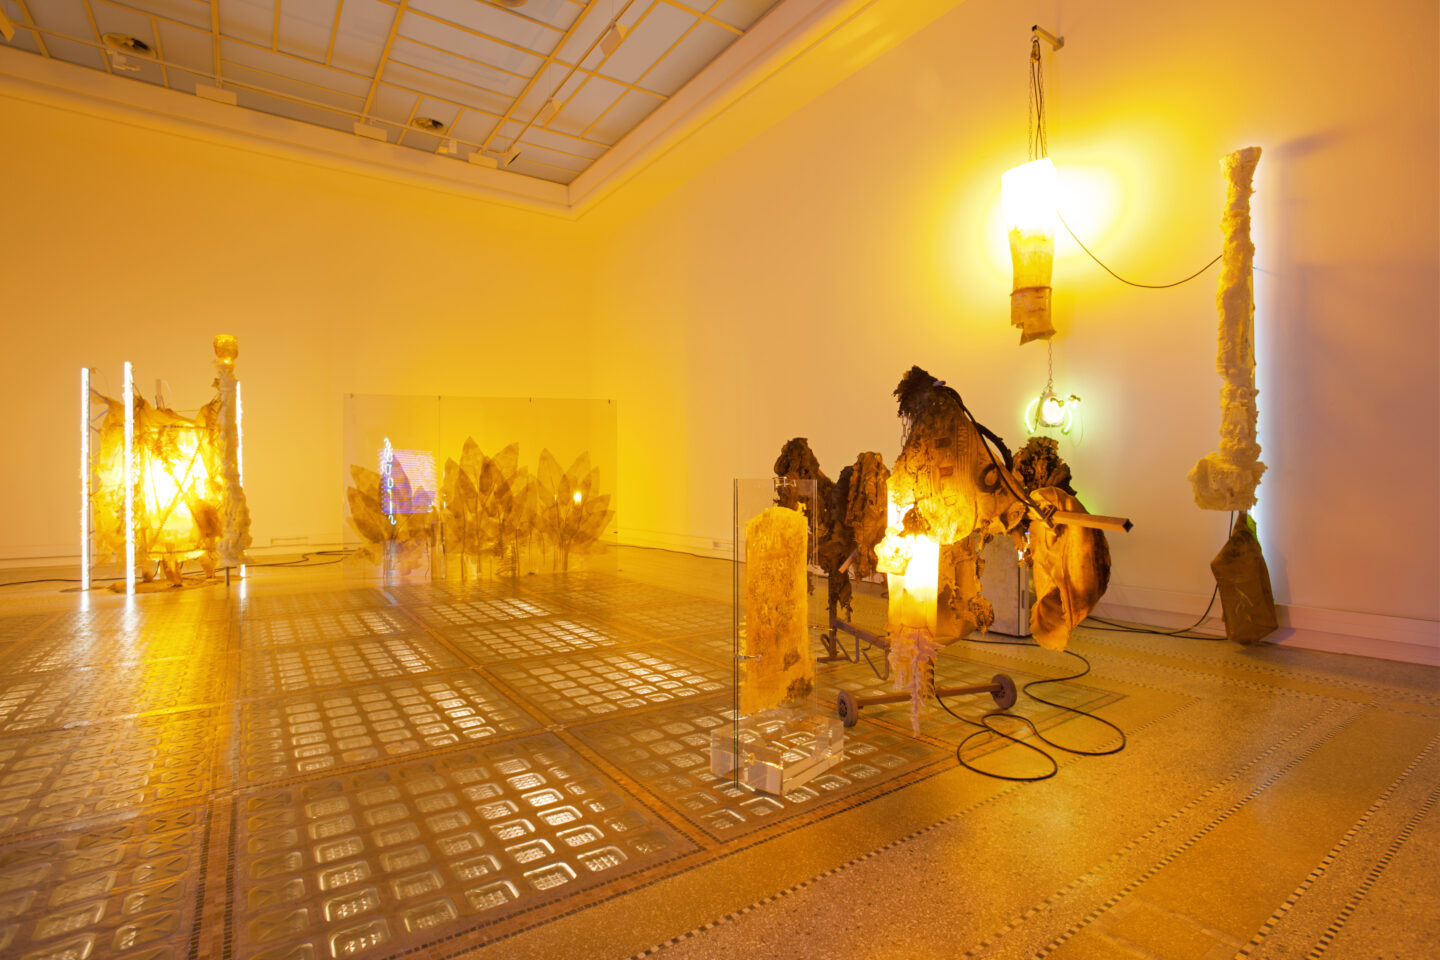 Exhibition View Chloé Delarue Soloshow «TAFAA - ACID RAVE» at MBAC, La Chaux-de-Fonds, 2019 / Photo: Florimond Dupont / Courtesy: the artist and MBAC